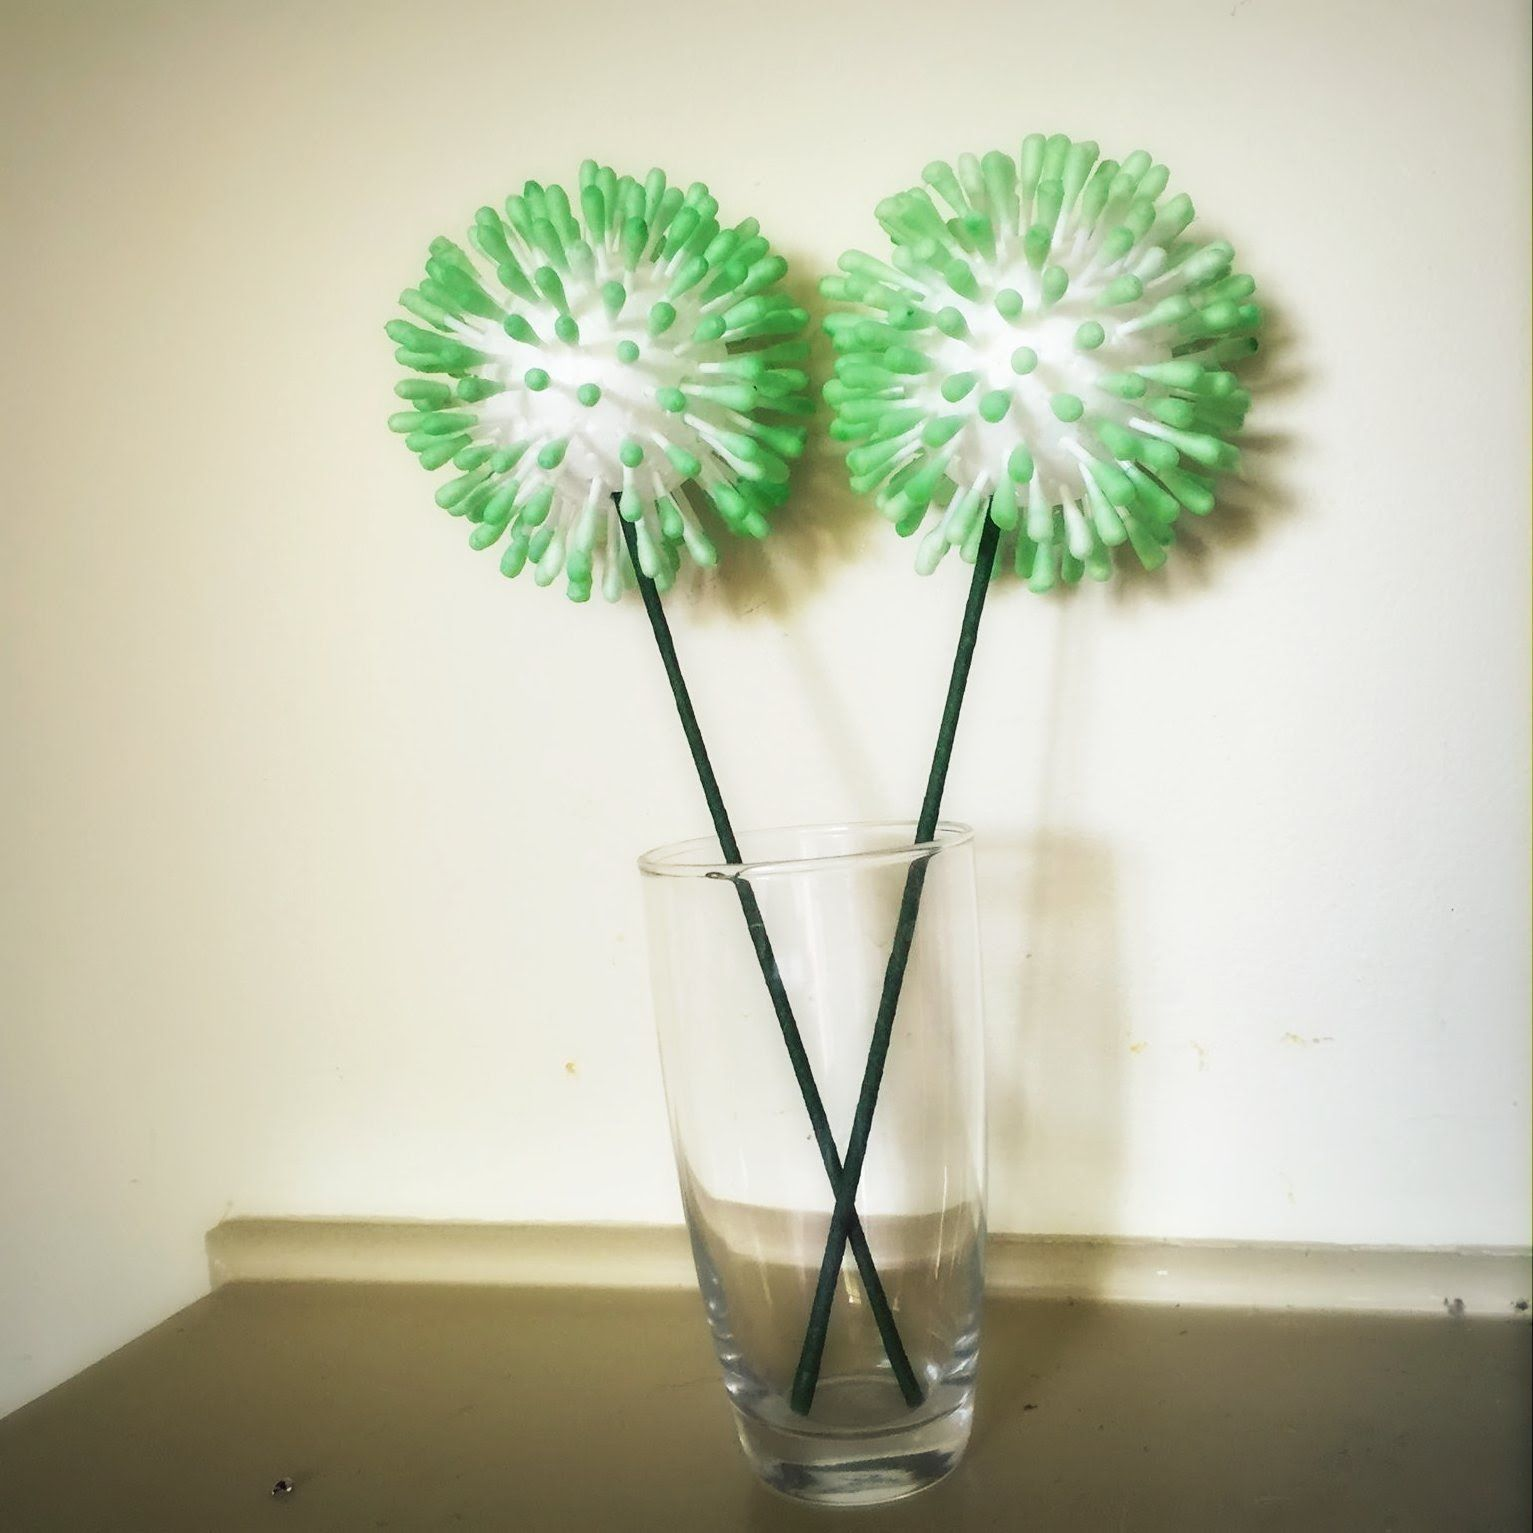 Mothers Day Gift Idea - DIY Home decor:Easy q-tip /cotton bud ...